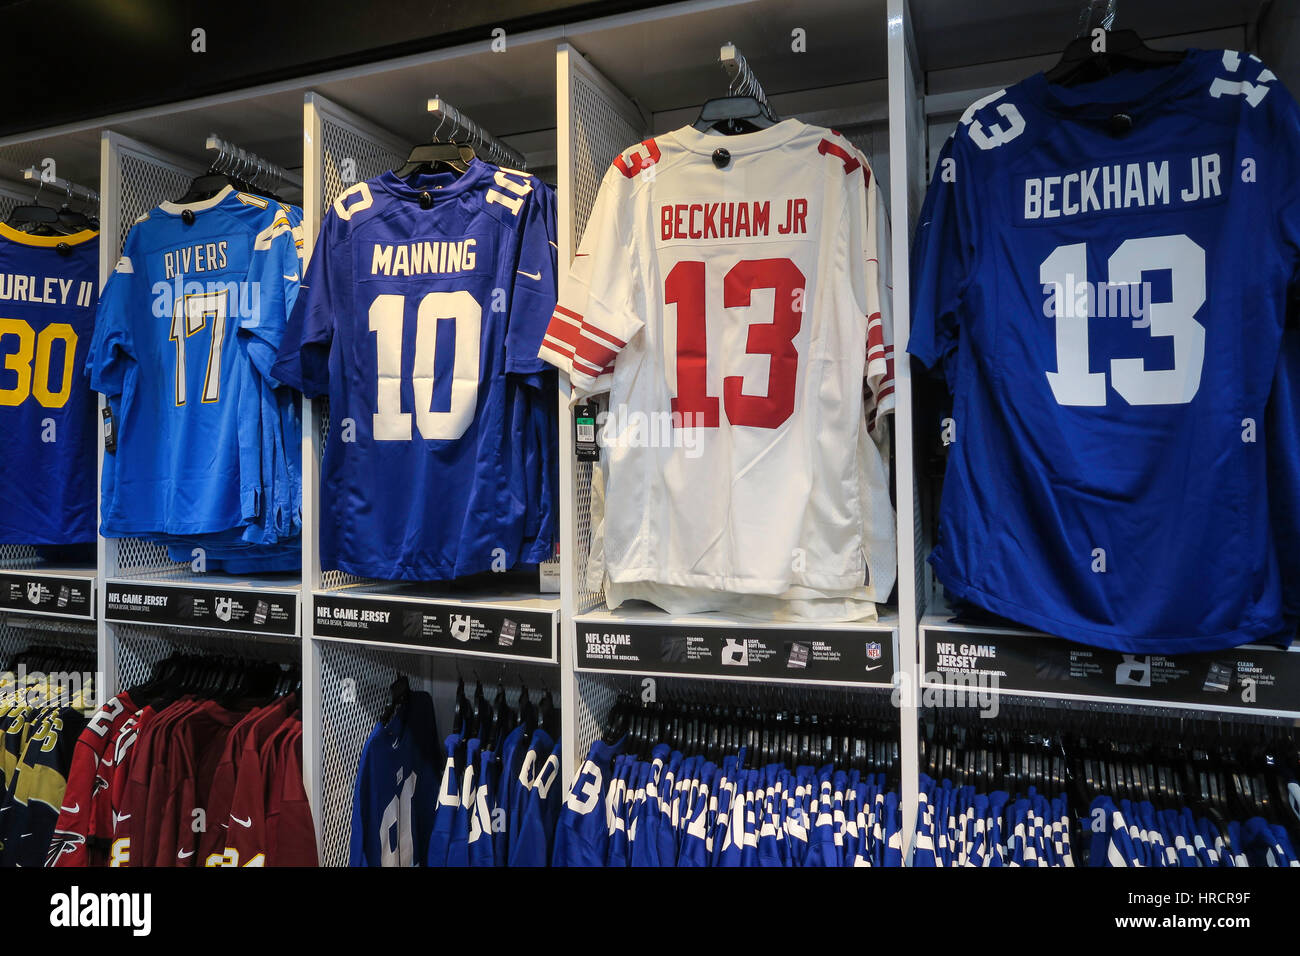 outlet store acaad c04ca NFL Branded Clothing Display, Modell's Sporting Goods Store ...